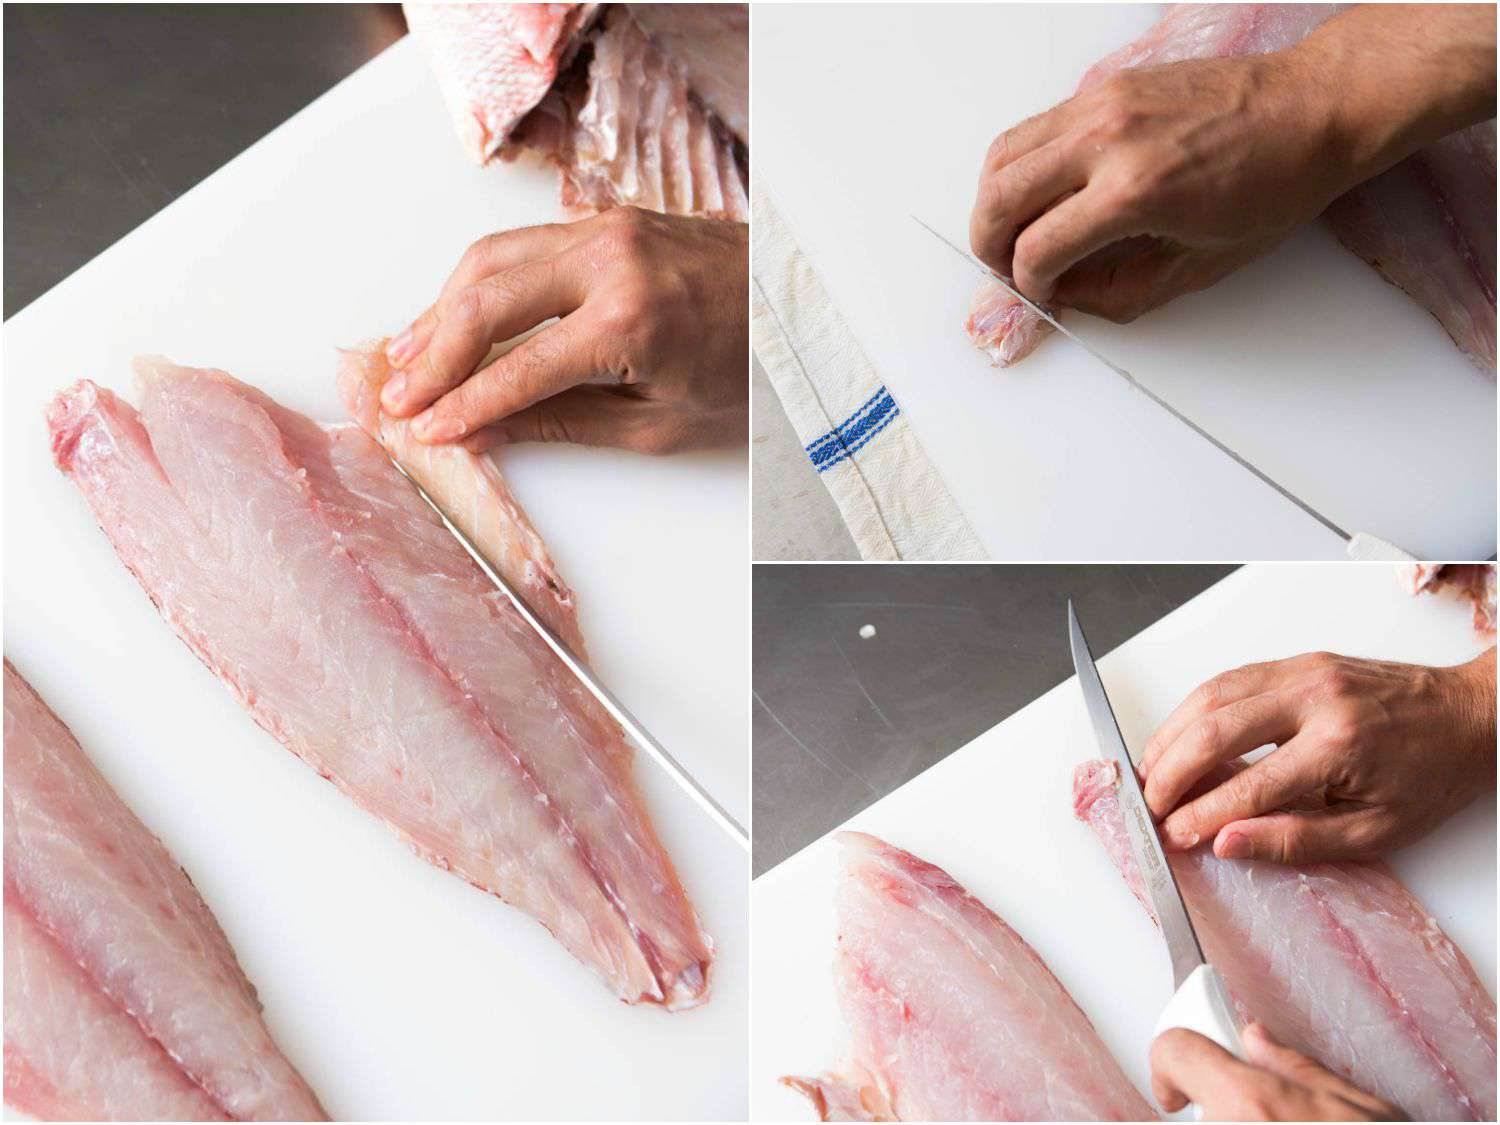 20150922-how-to-fillet-fish-trimming.jpg